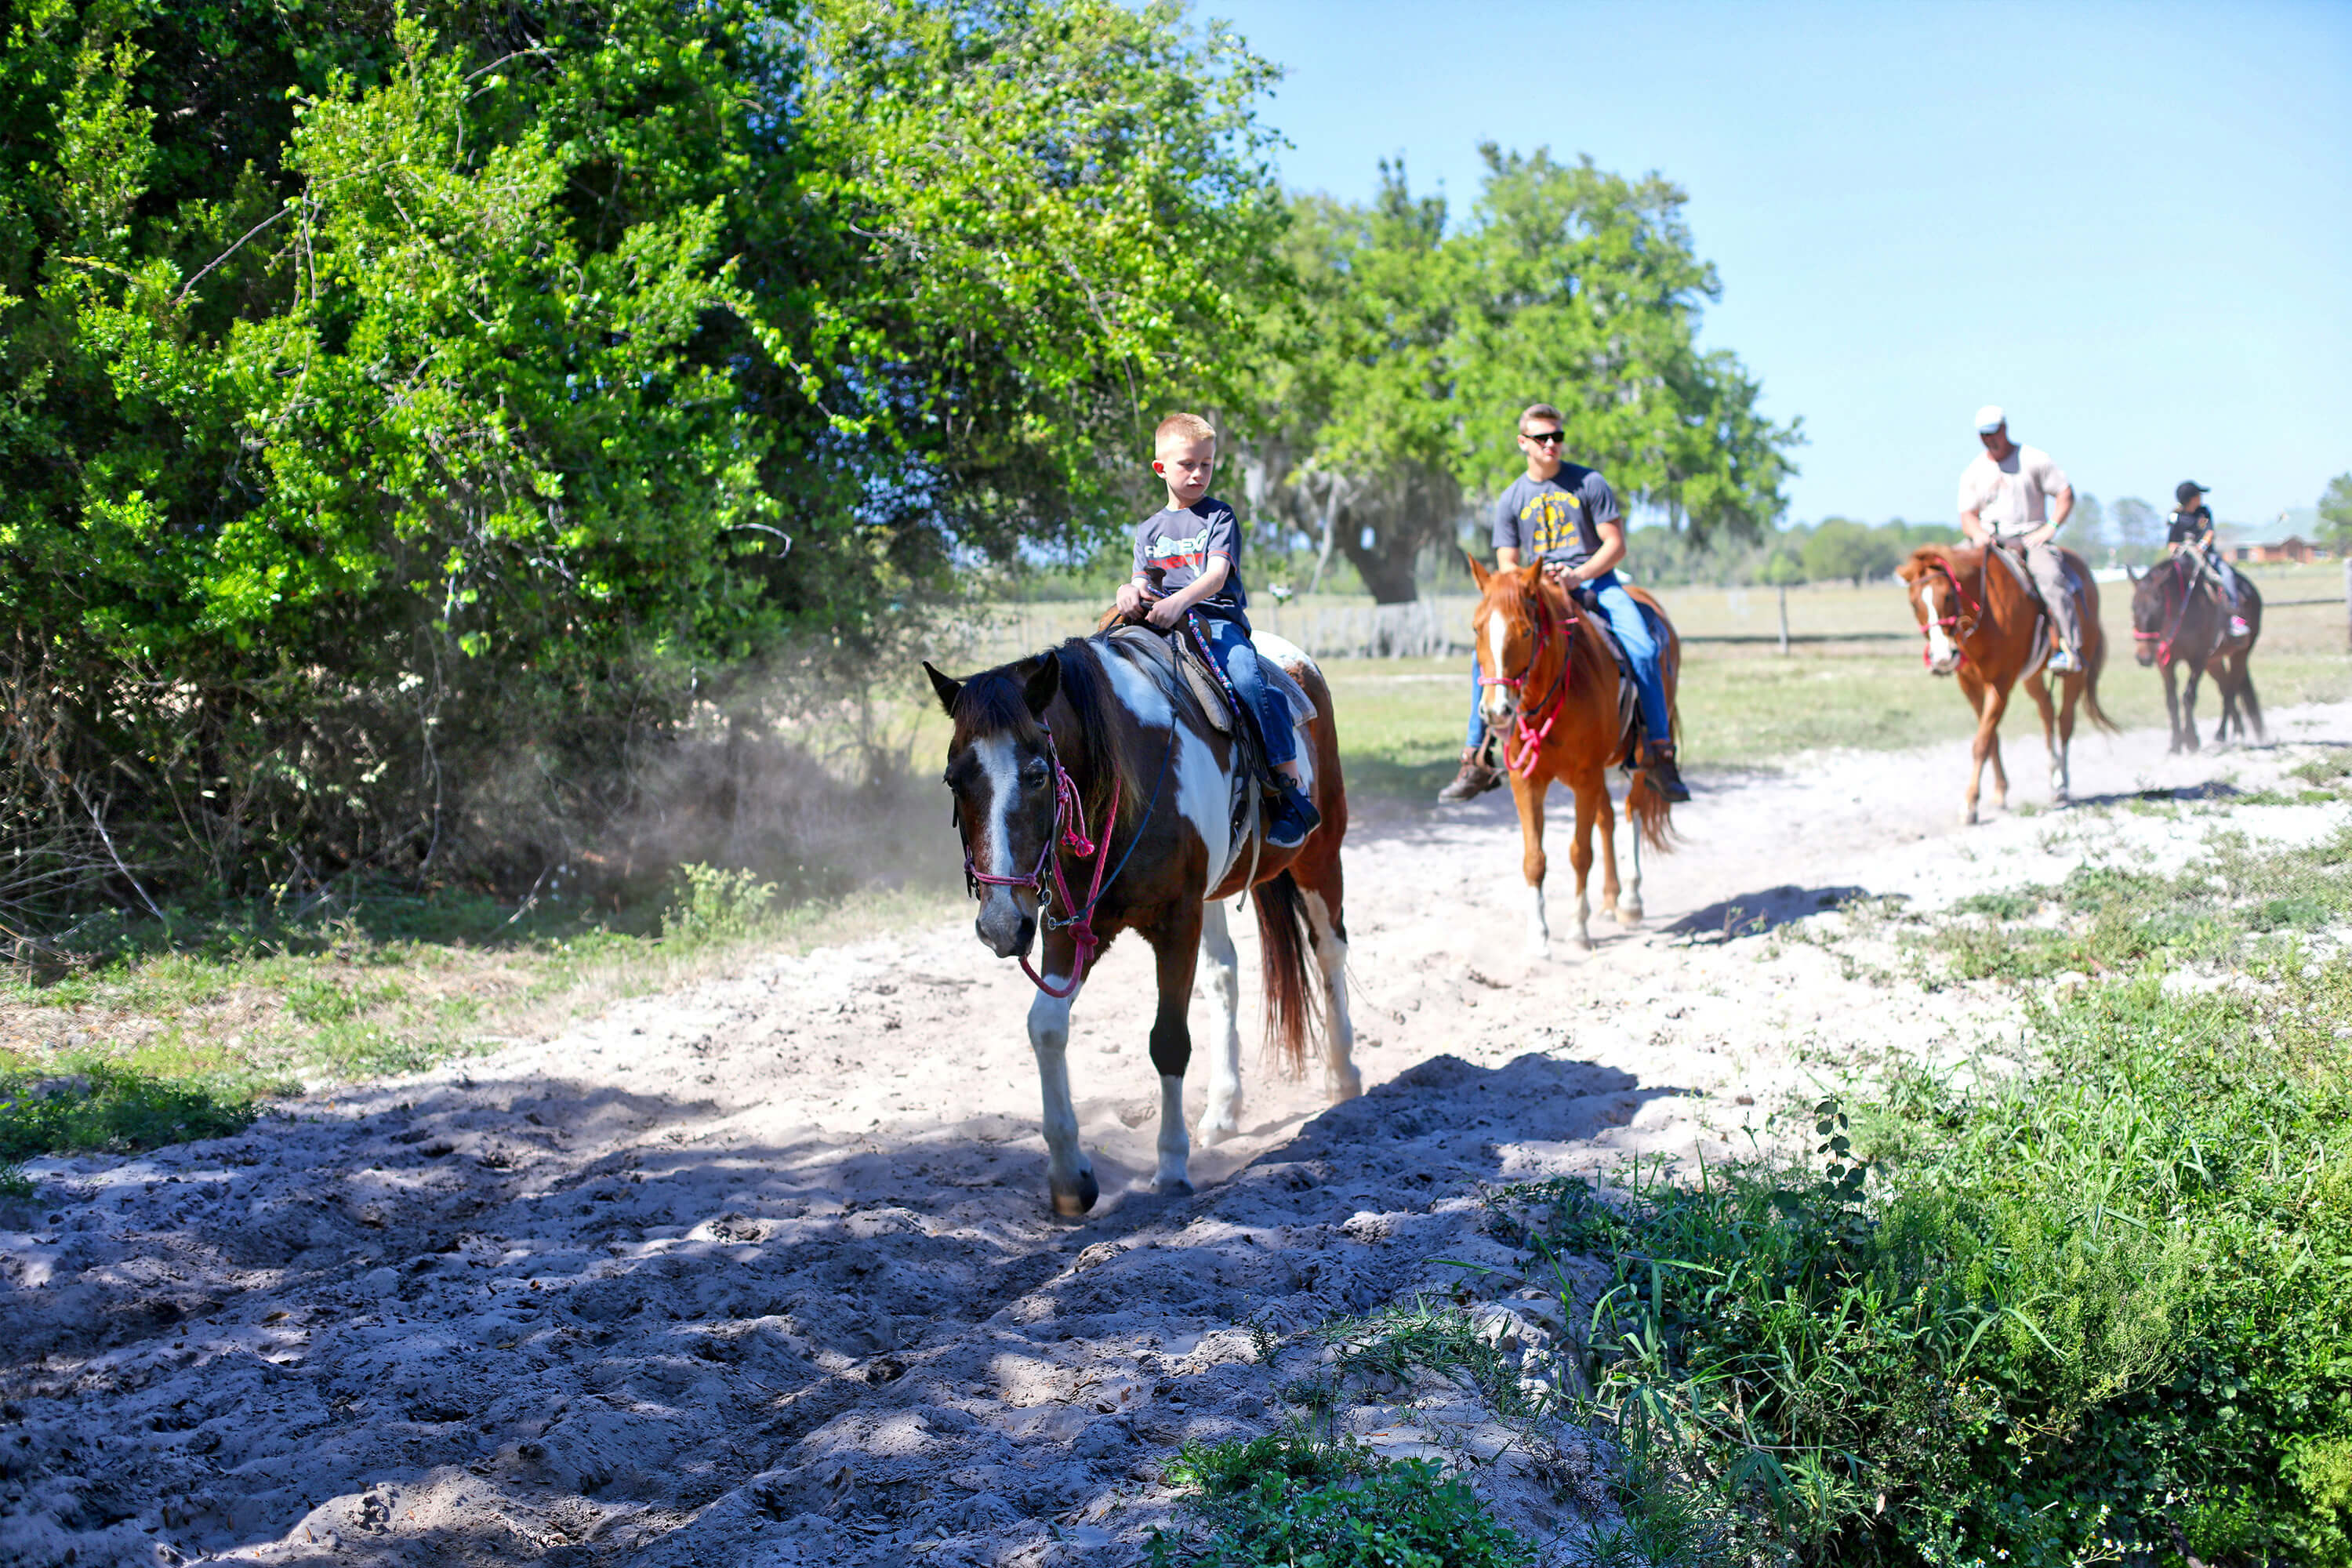 Horseback Riding Near Orlando, FL |  Westgate River Ranch Resort & Rodeo | Westgate Resorts